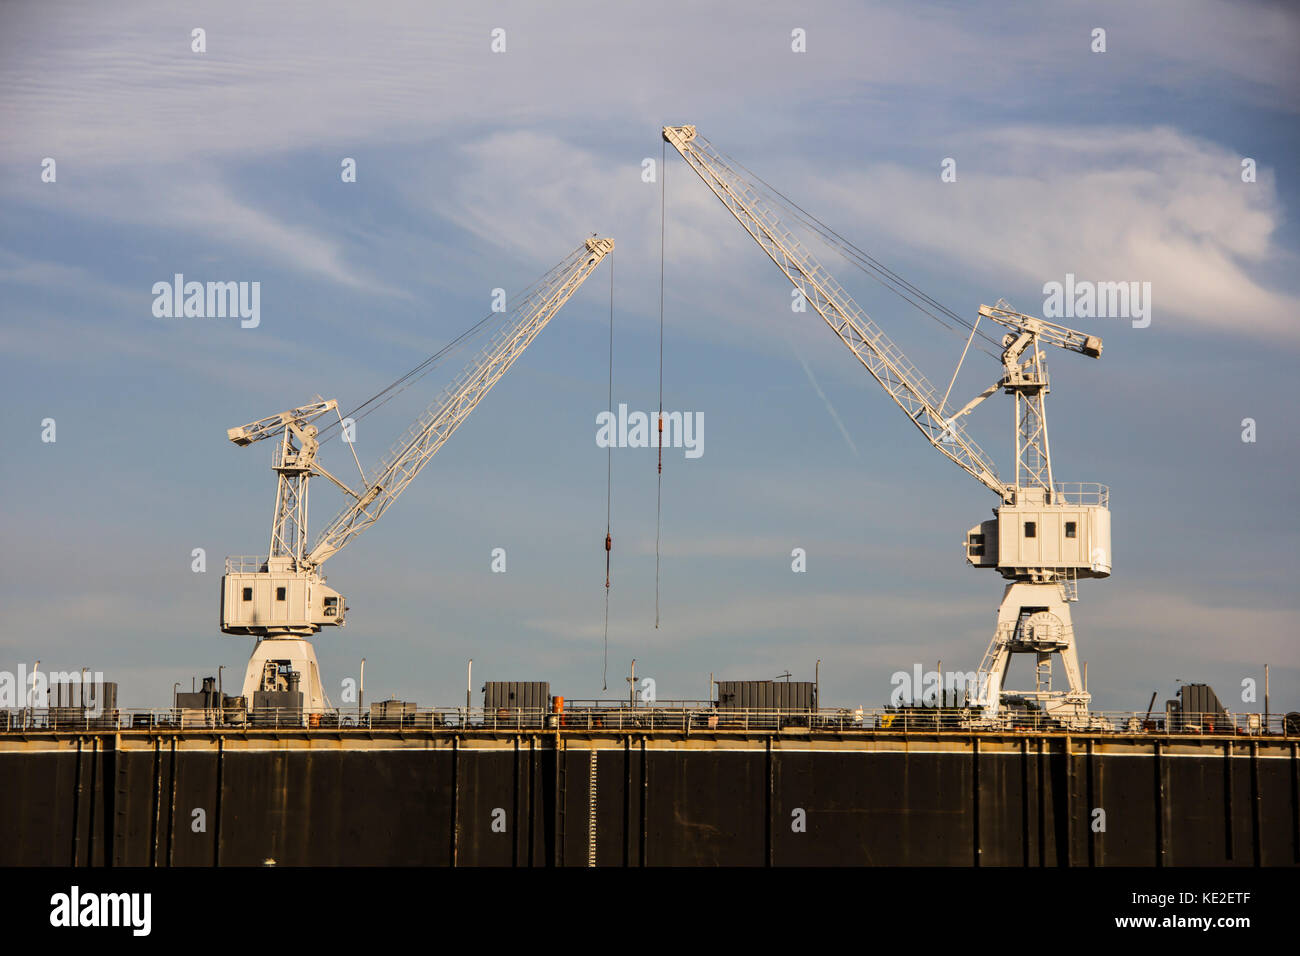 The dry dock for reconstruction of the ships and cranes above ready to work Stock Photo